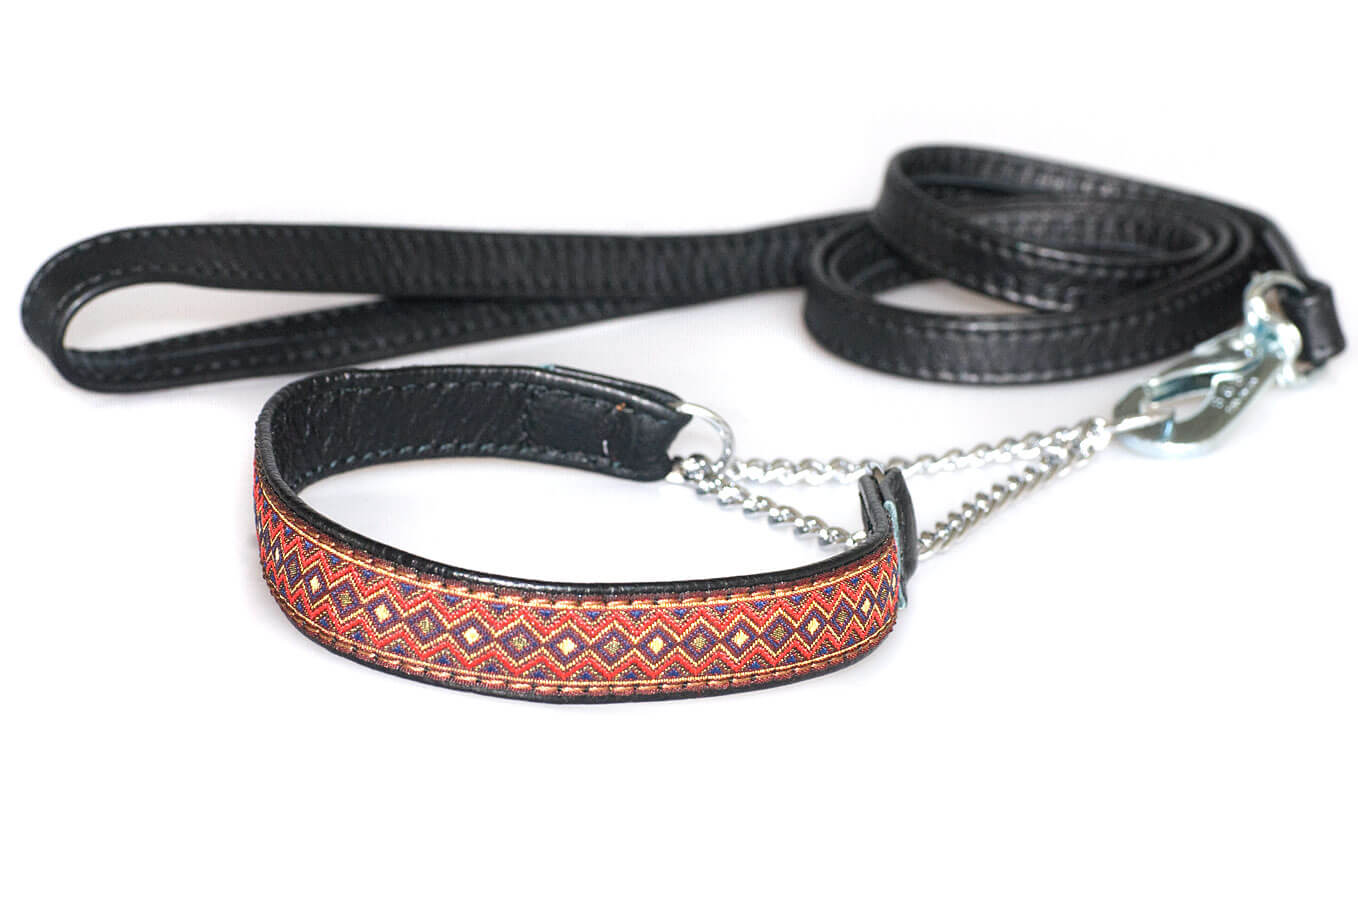 Soft leather black dog show set with ribbon martingale collar